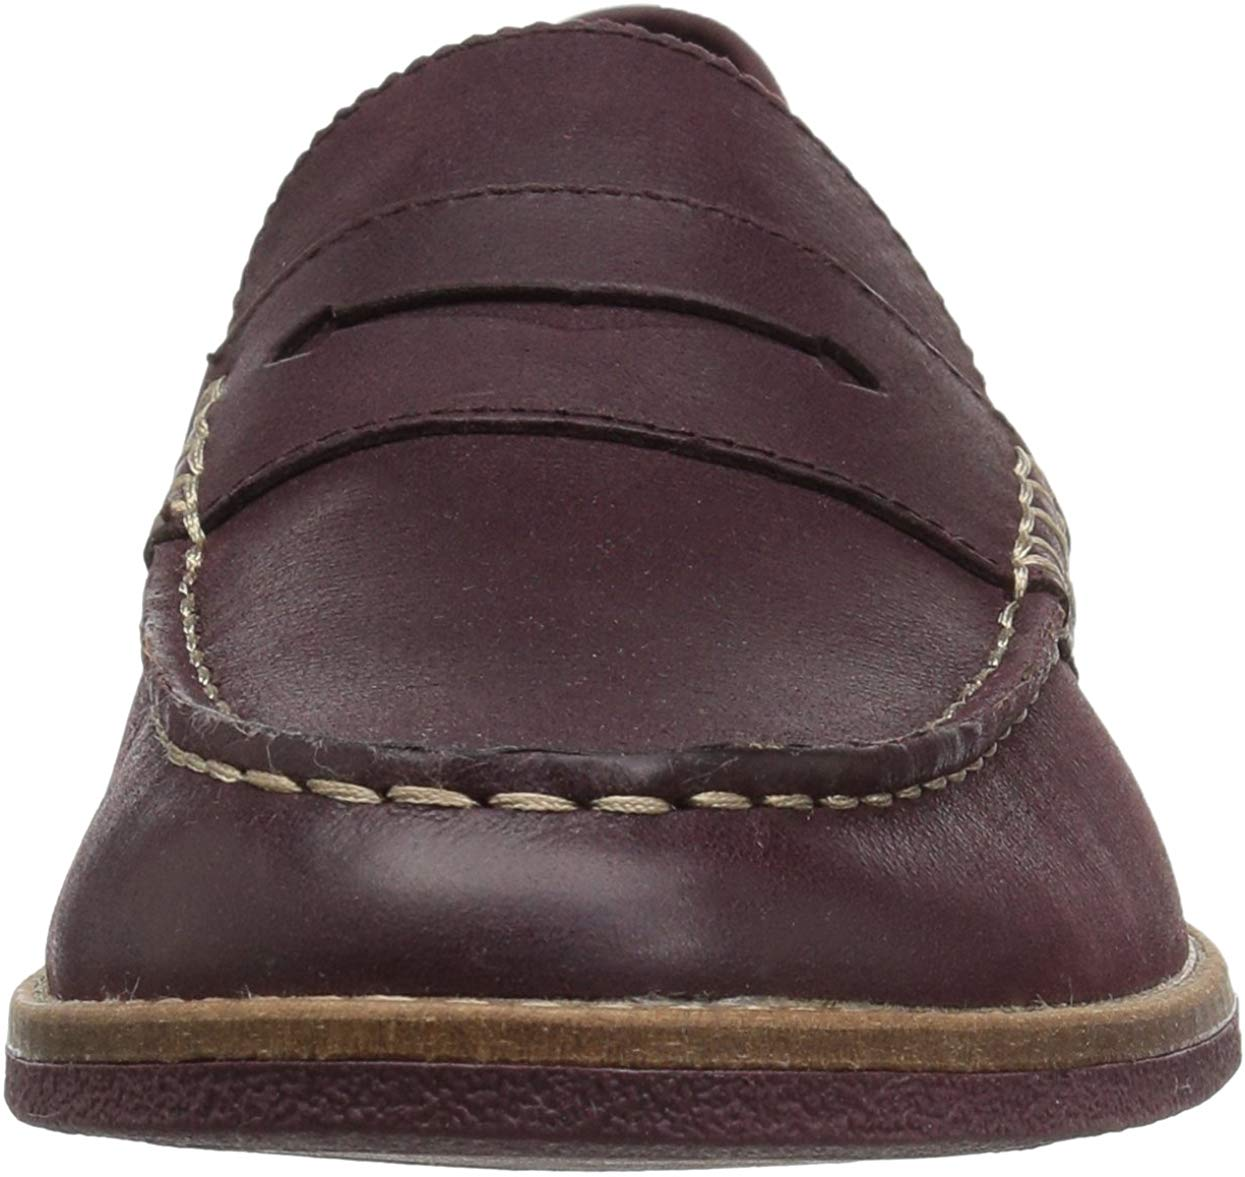 Sperry Women's Seaport Penny Loafer, Wine, Size 5.5 | eBay